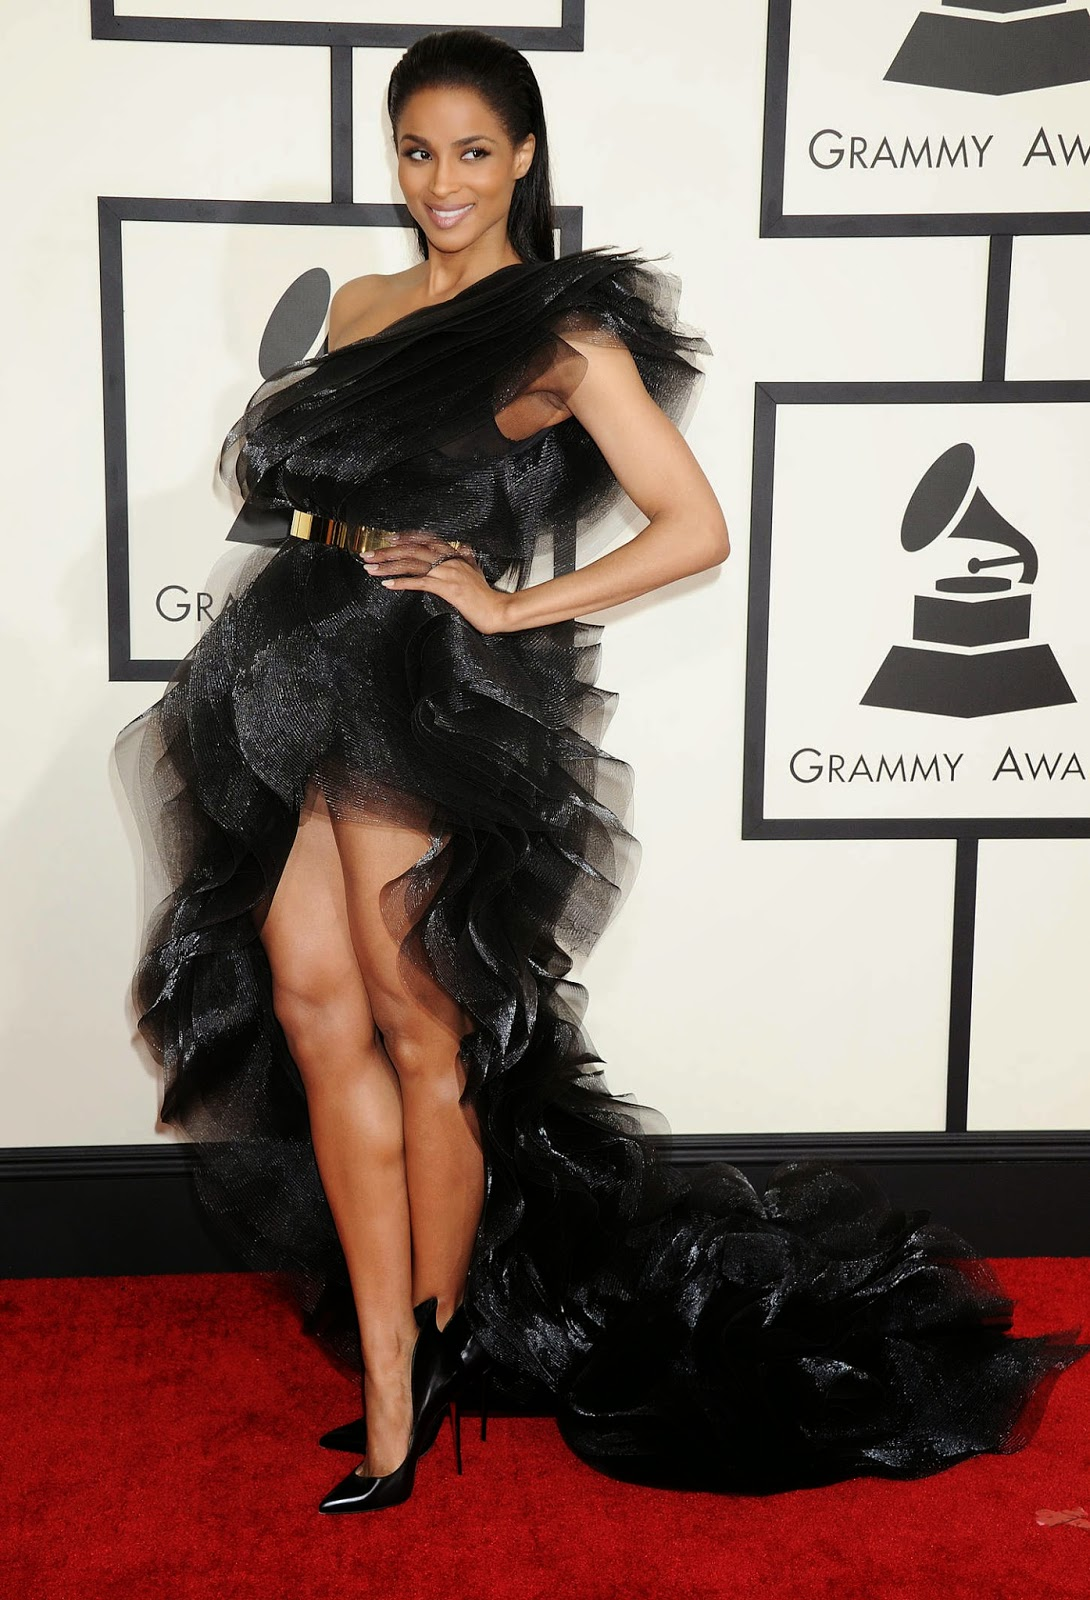 Ciara wears a dramatic Alexandre Vauthier Couture gown to the 2015 Grammy Awards in LA